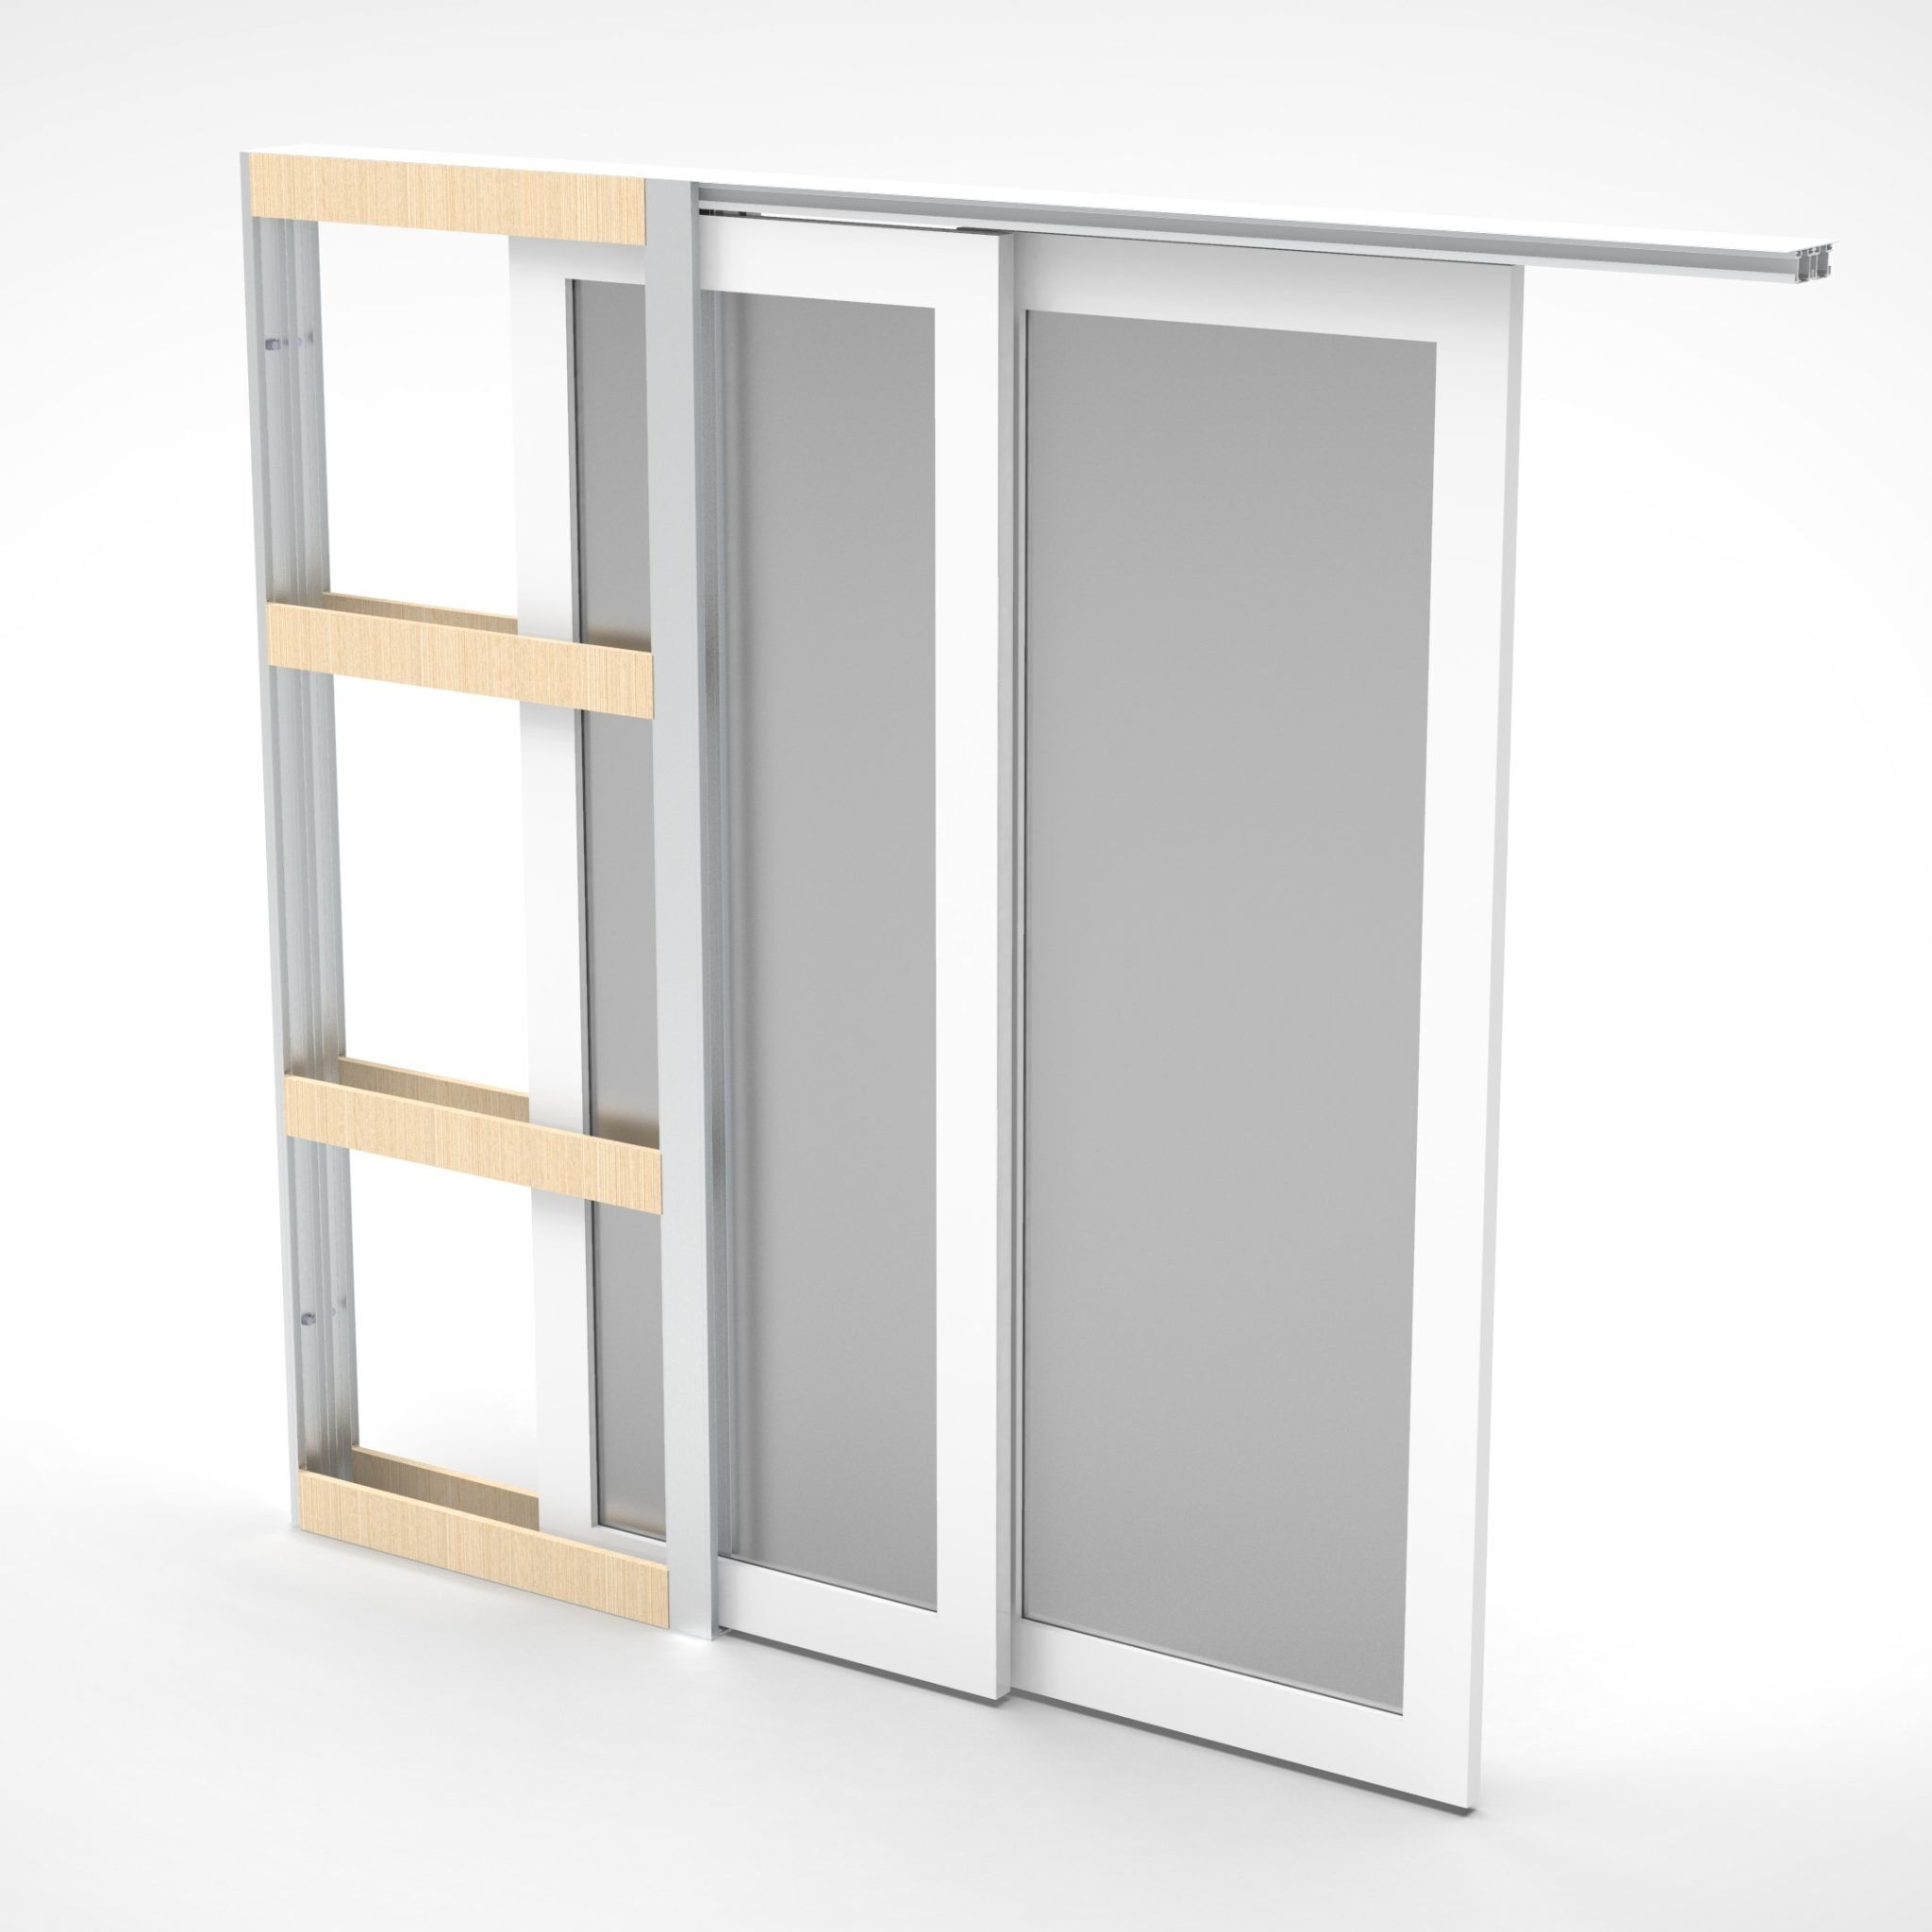 Telescopic Cavity Sliding Door System Premium Sliding